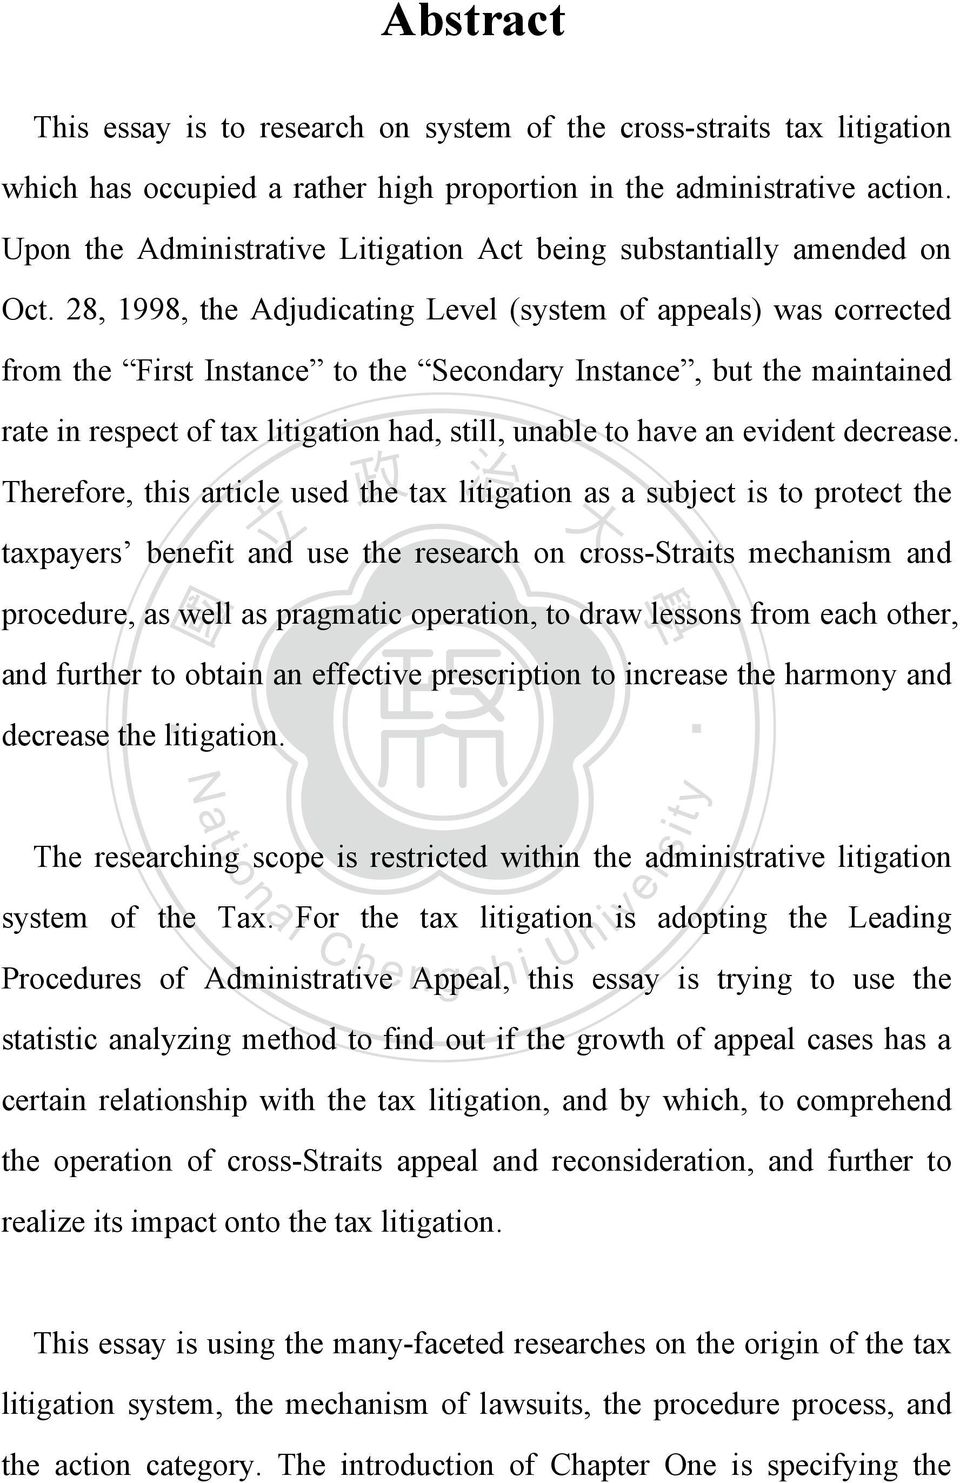 28, 1998, the Adjudicating Level (system of appeals) was corrected from the First Instance to the Secondary Instance, but the maintained rate in respect of tax litigation had, still, unable to have